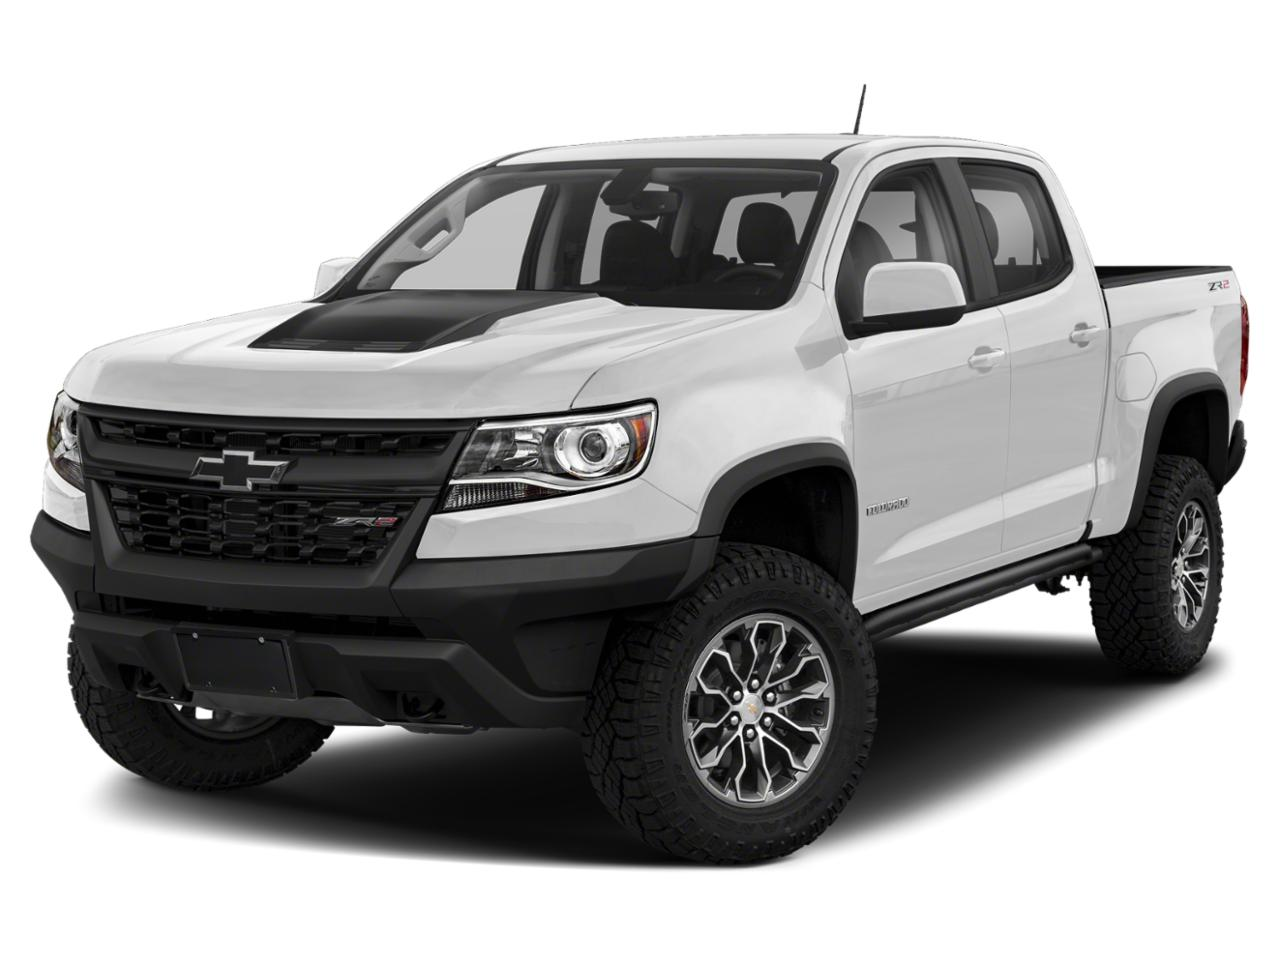 Summit White 2019 Chevrolet Colorado ZR2 Crew Cab Pickup Wake Forest NC